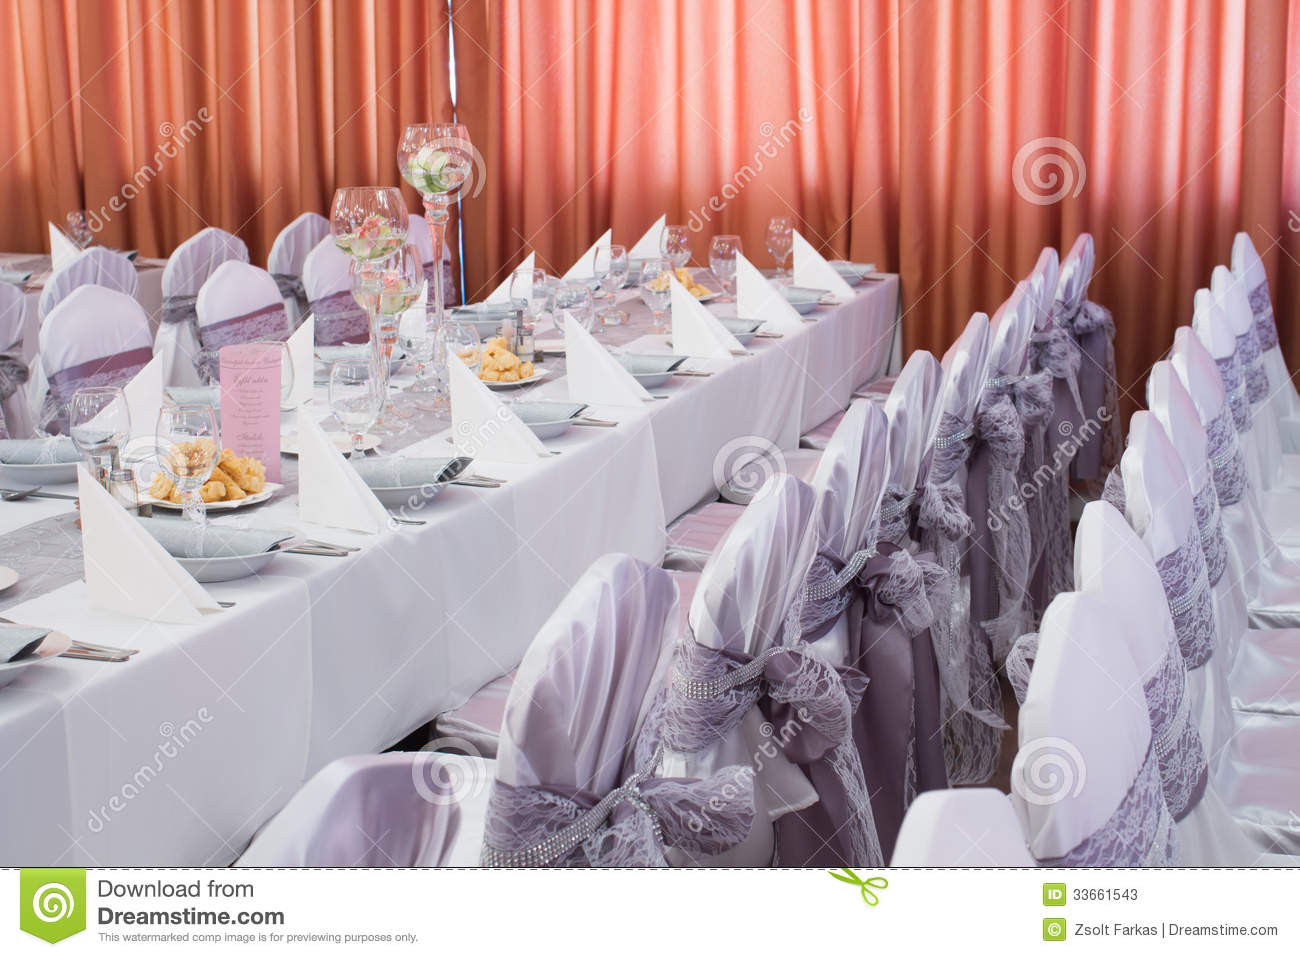 wedding decorations chairs receptions bariatric potty chair table set for an event party or reception stock